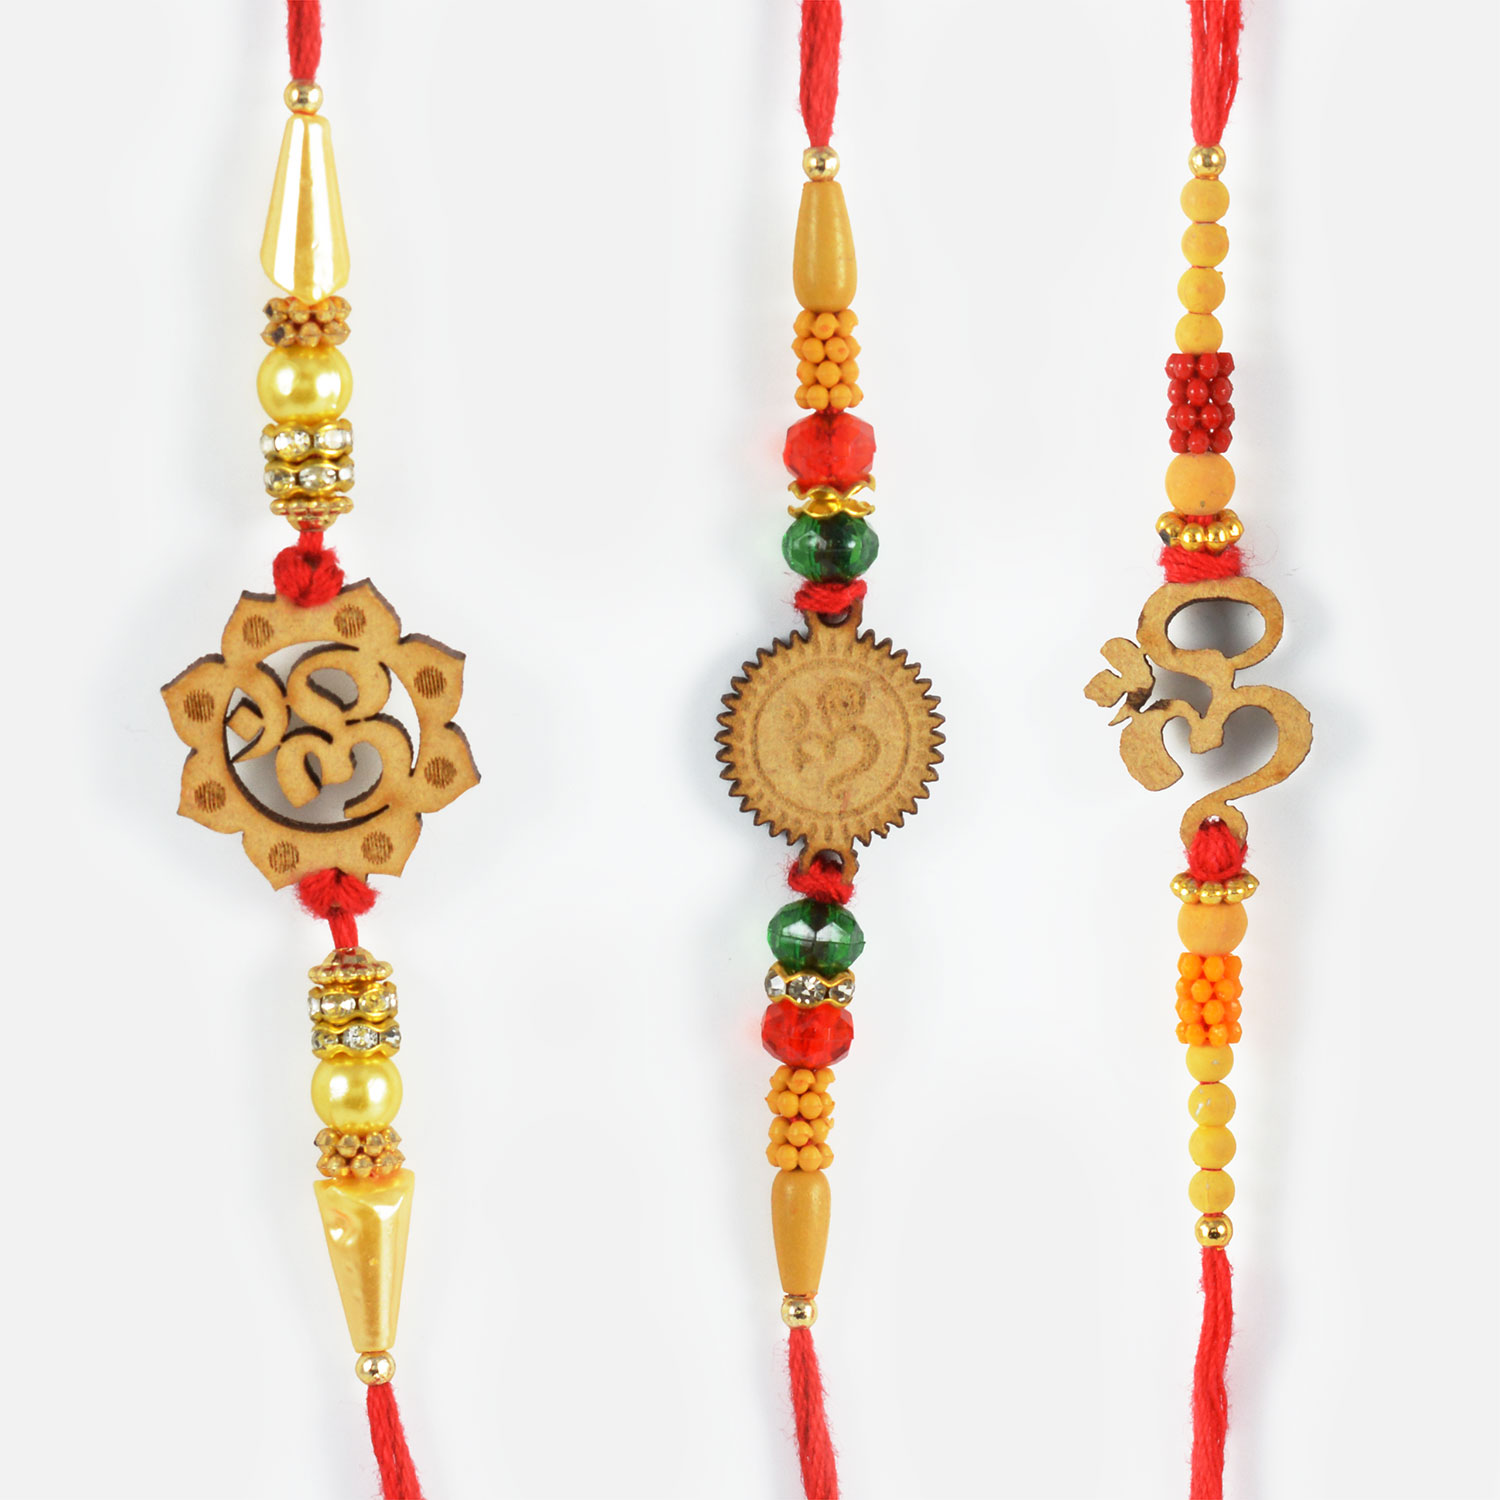 Handcrafted Wooden OM with Beads and Pearls Rakhi Set of 3